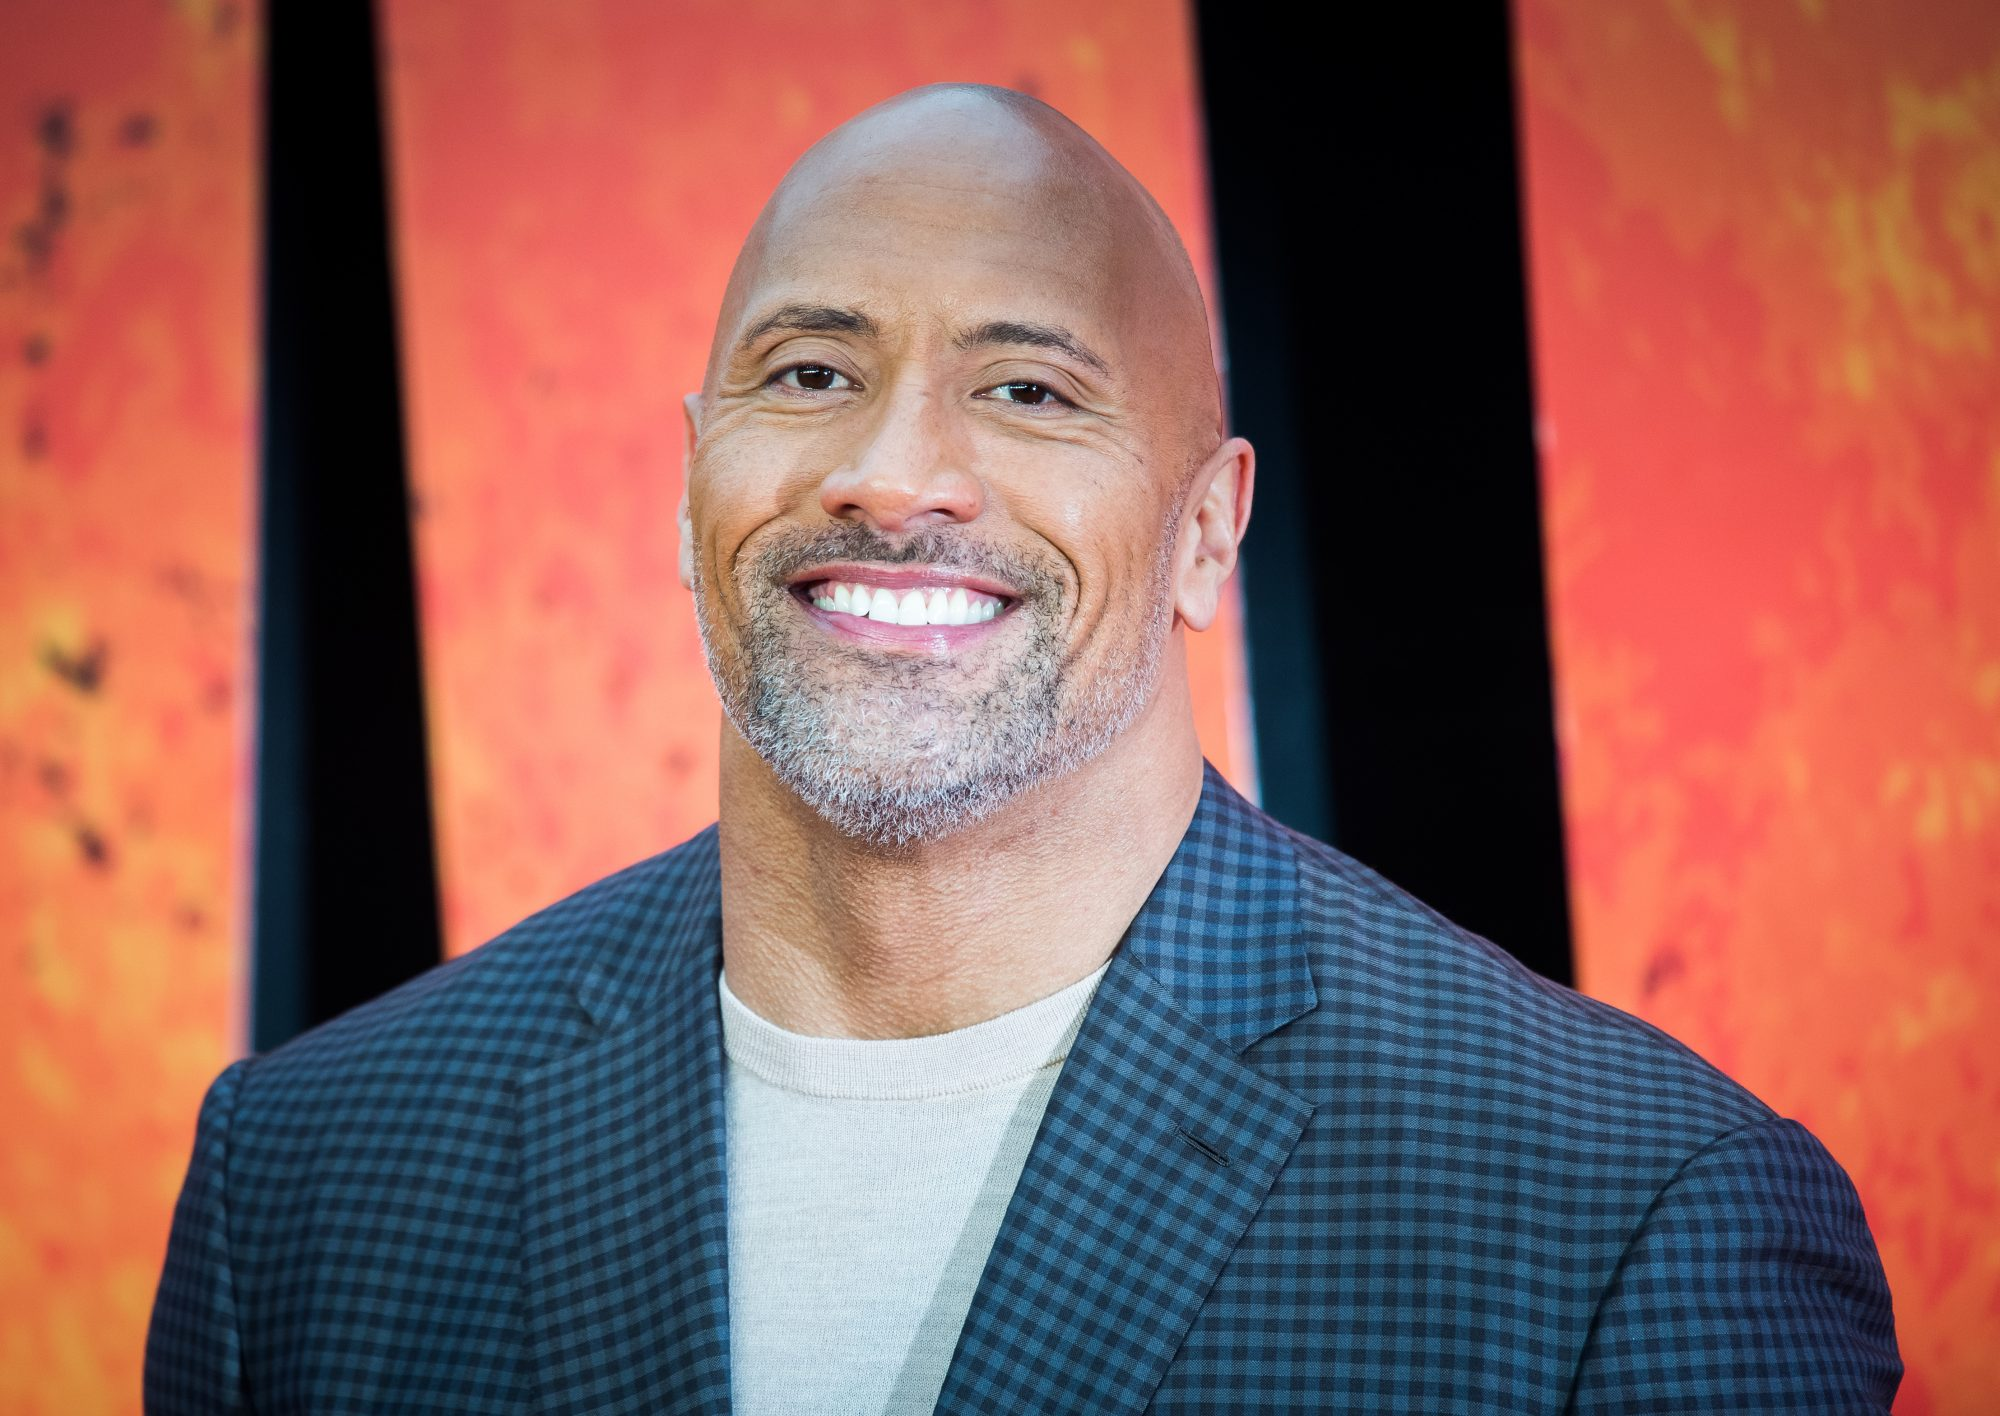 the rock coronavirus, dwayne johnson